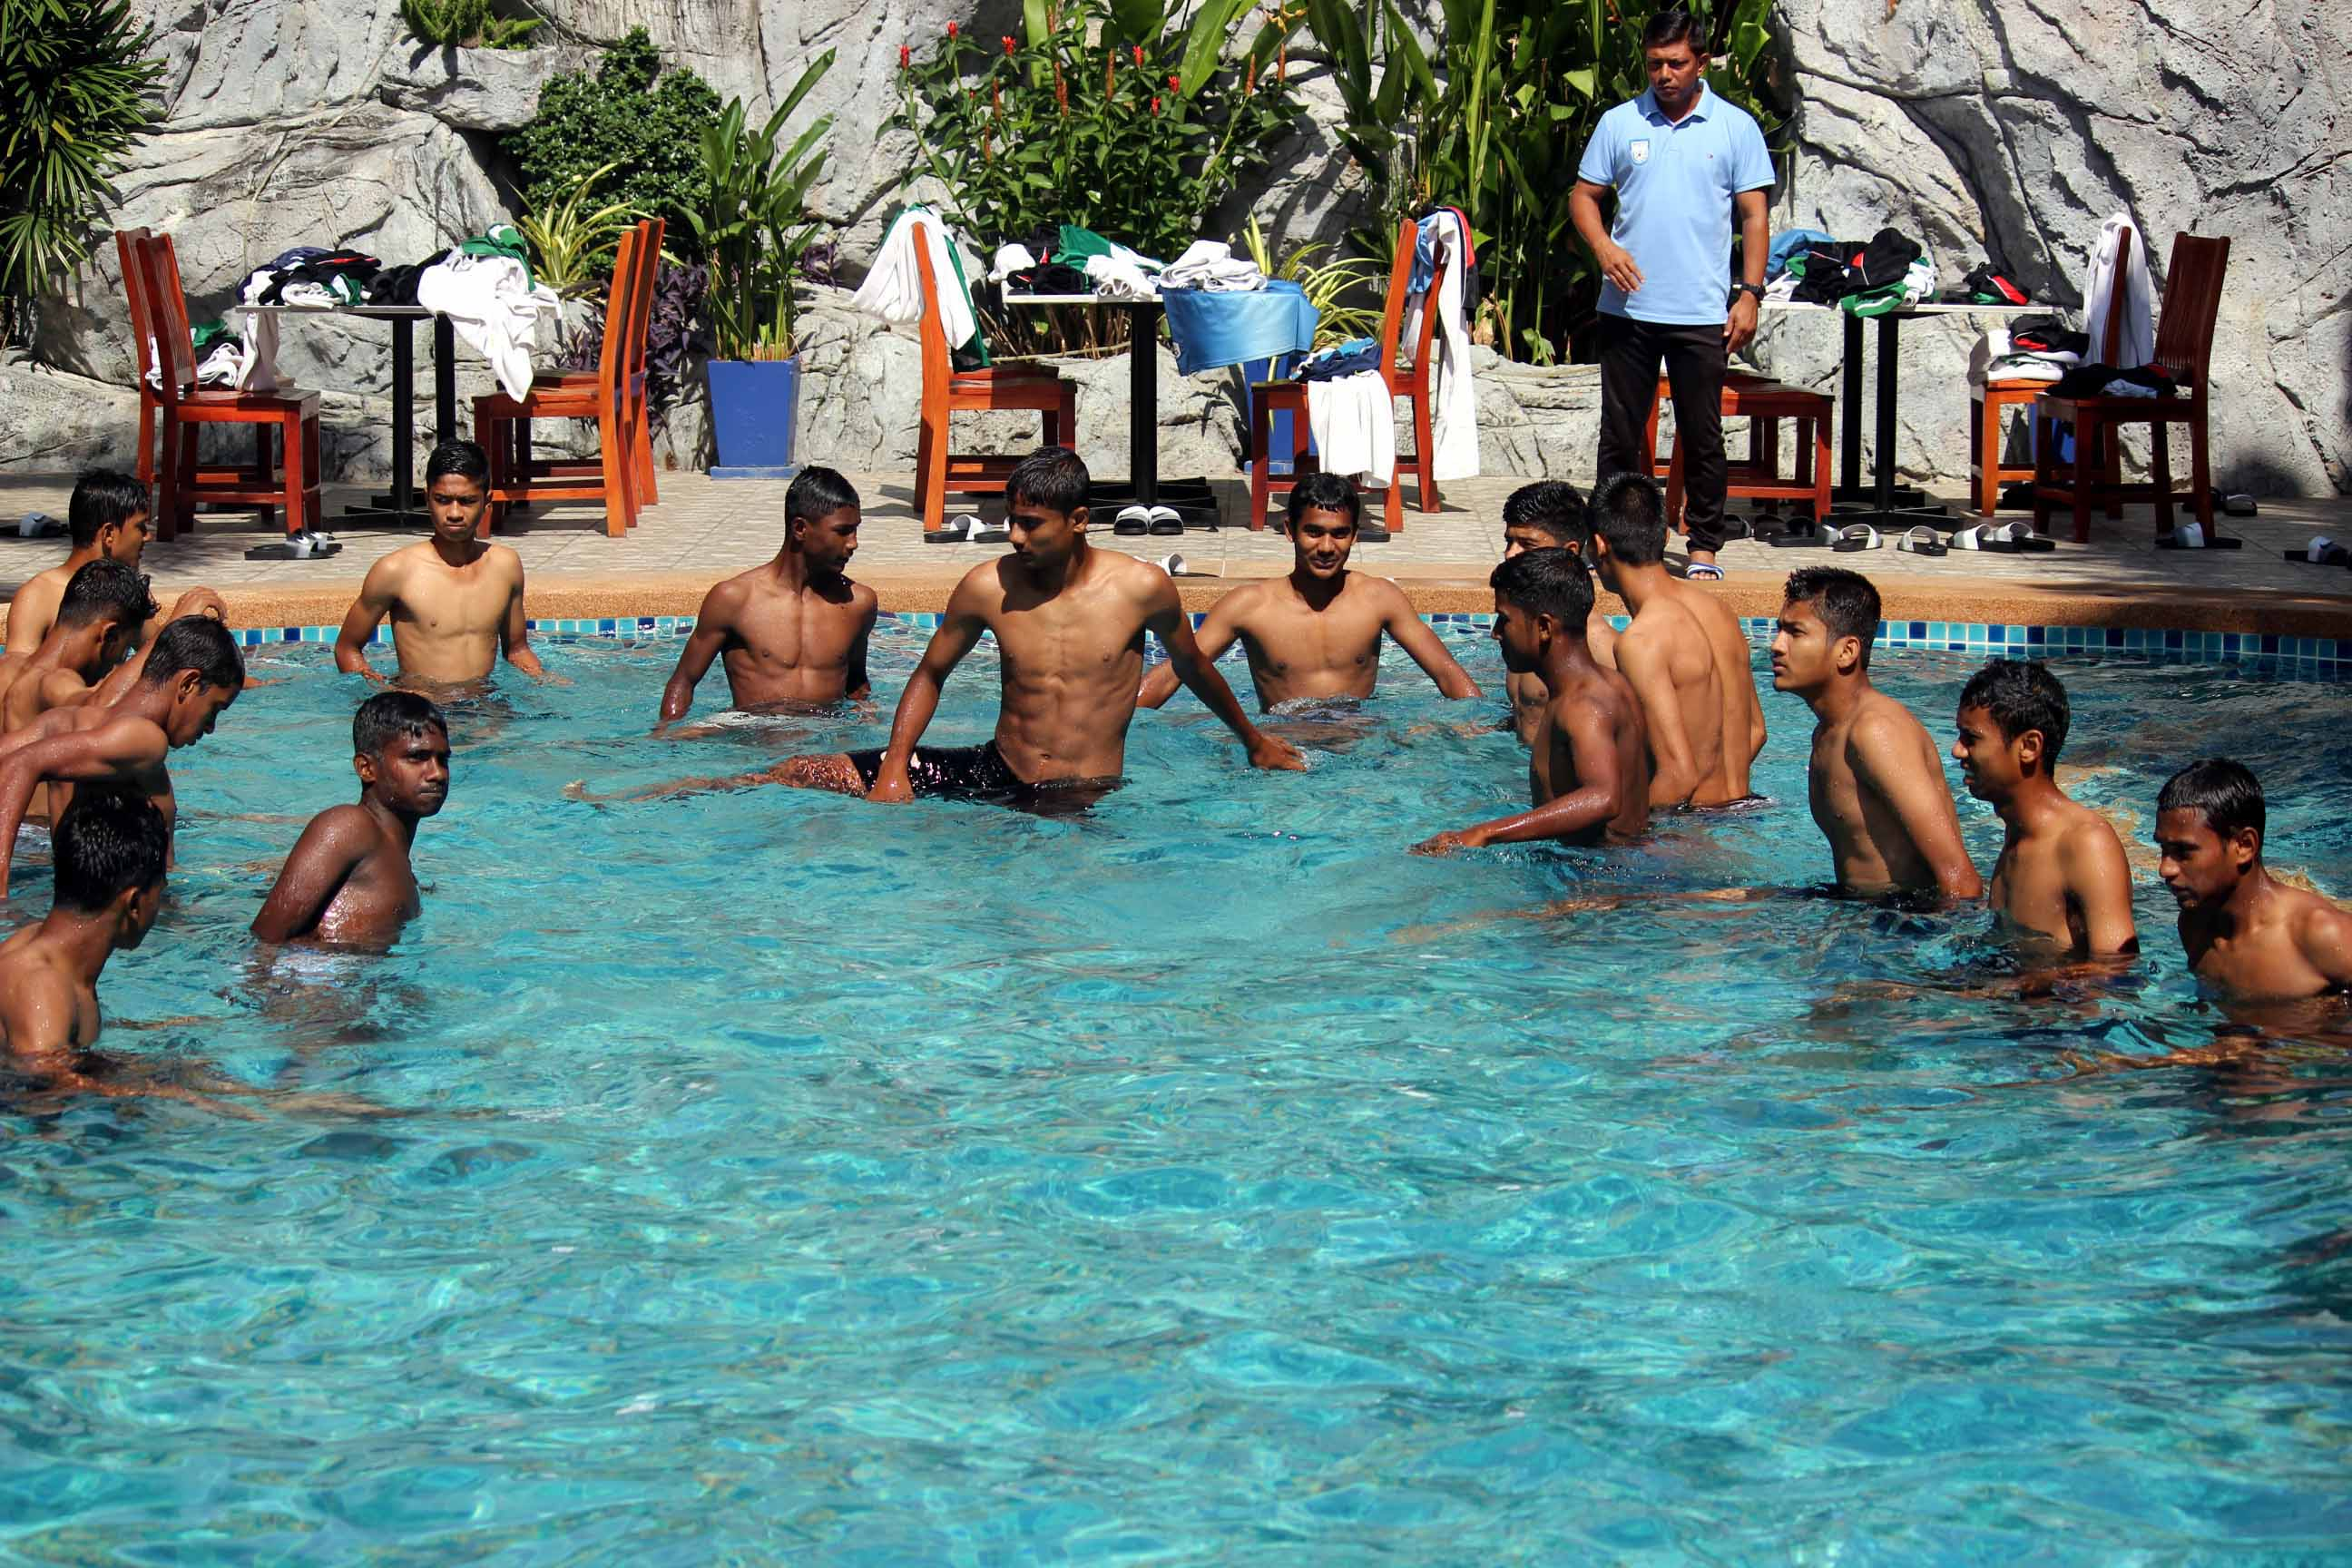 Members of Bangladesh Under-15 Football team passing their time at a swimming pool in Thailand on Tuesday.